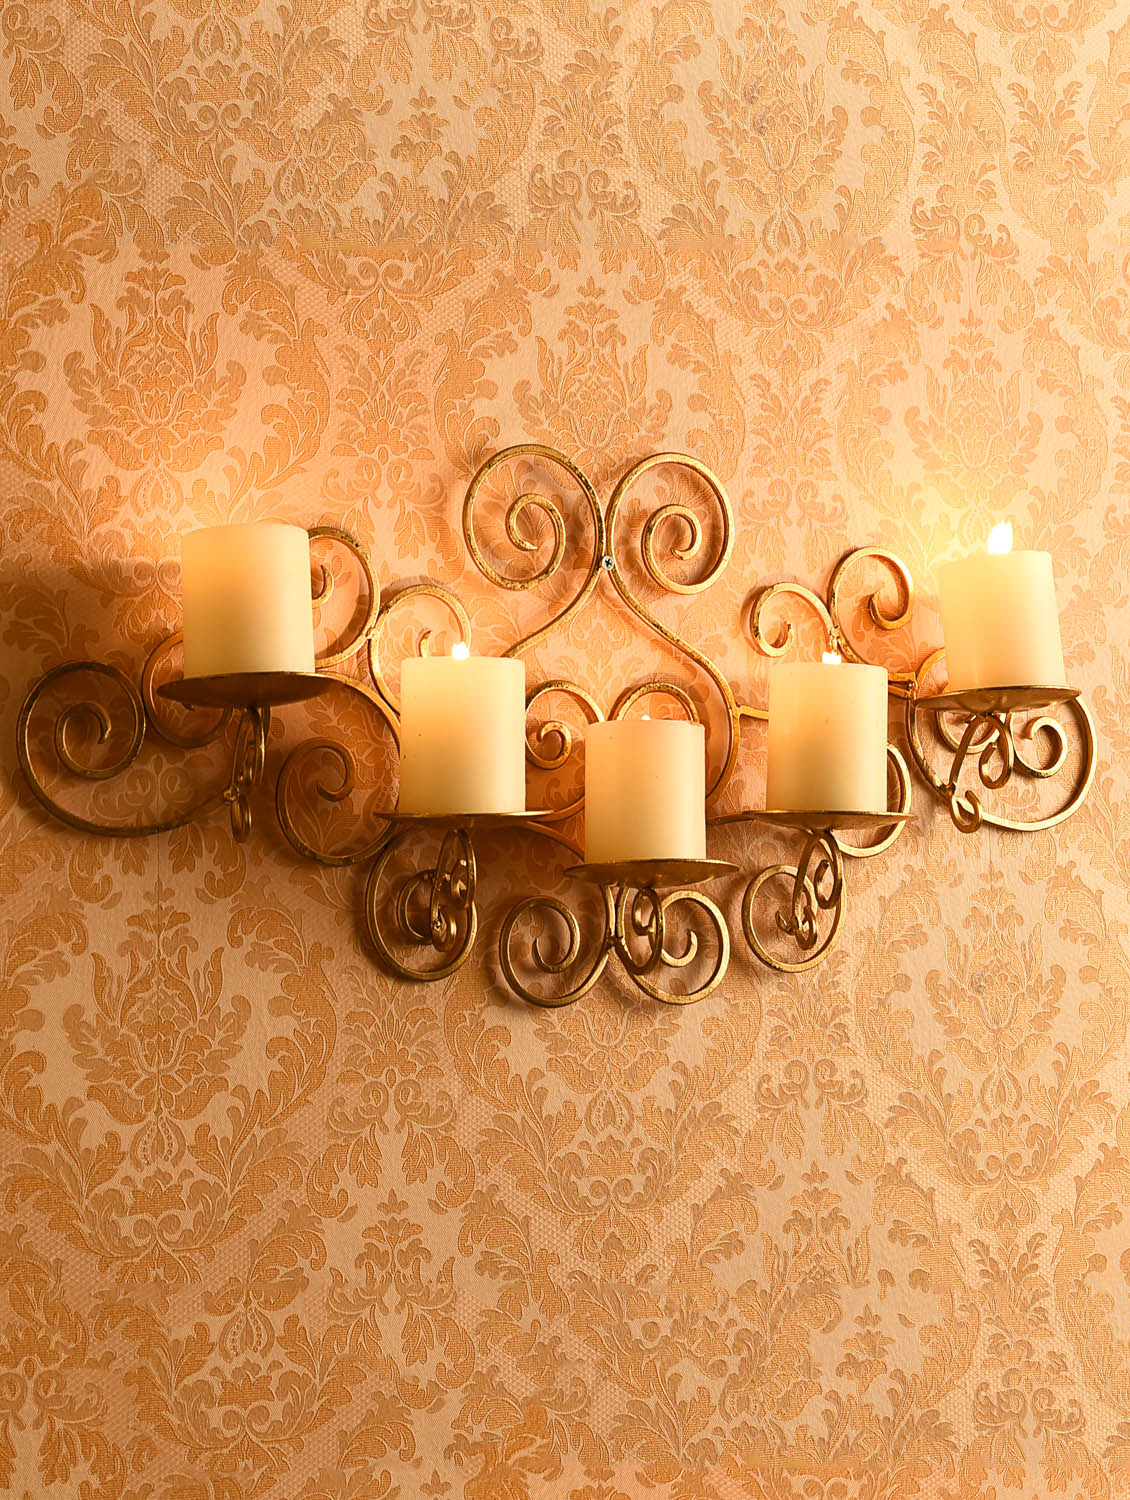 Buy Online Metallic Gold Wall Sconce With Free Candles From Candle Holders For Unisex By Hosley For 2565 At 5 Off 2021 Limeroad Com